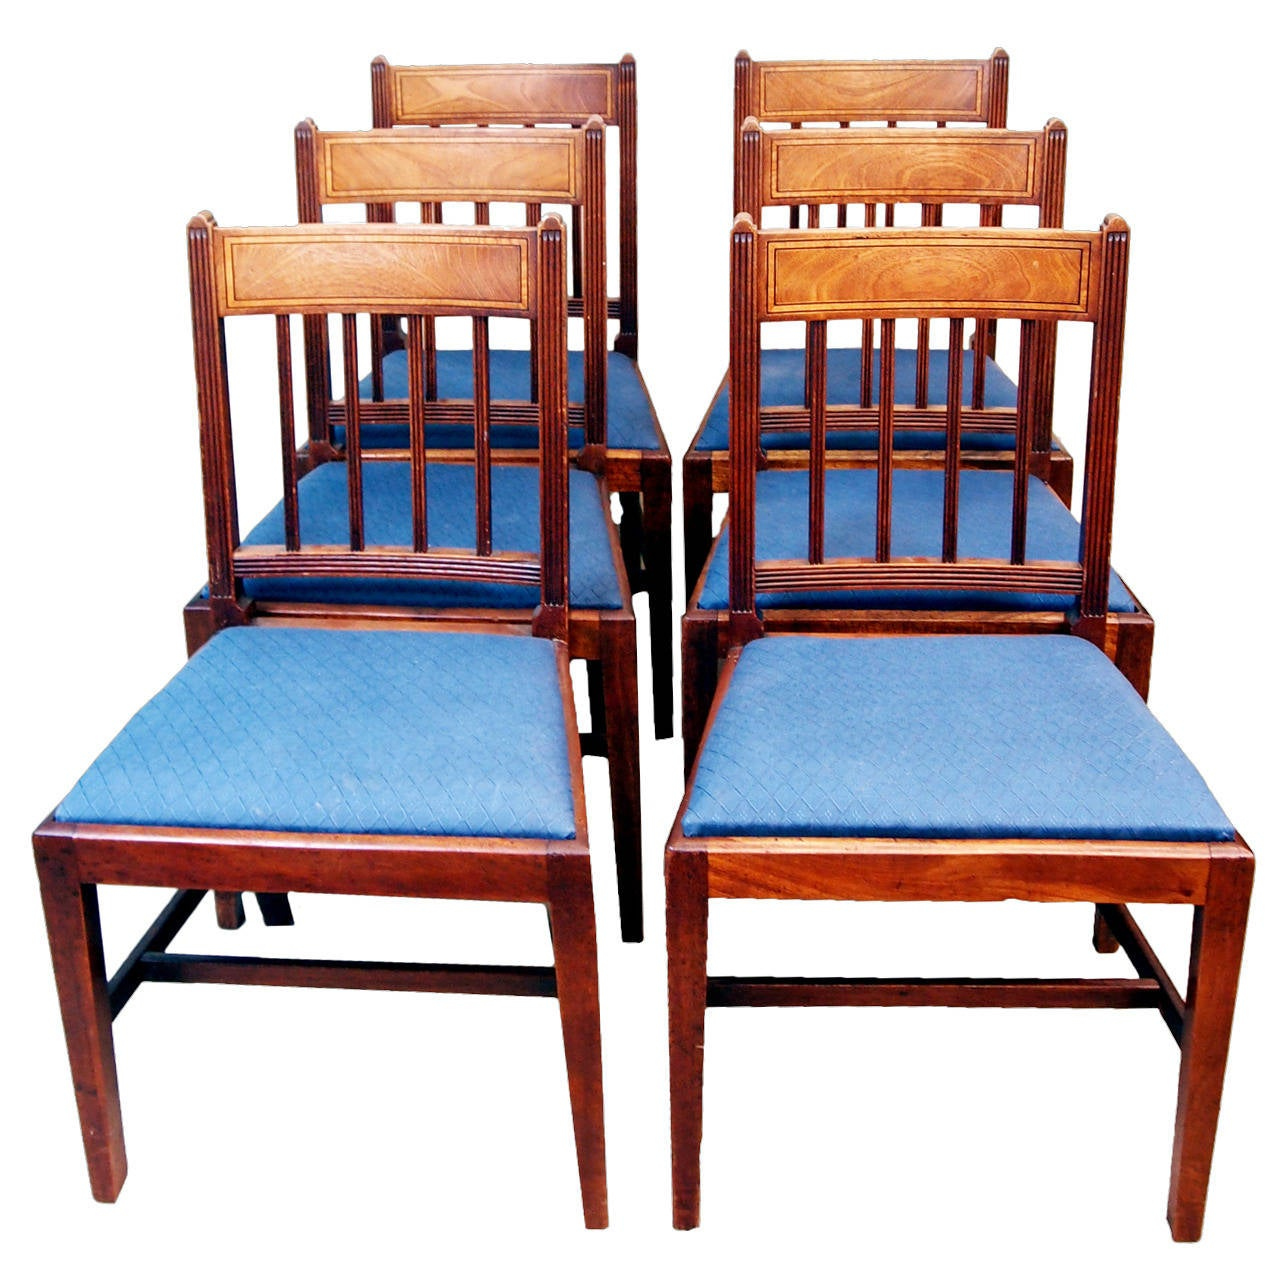 Antique Dining Room Chairs For Sale: Antique Georgian Set Of Six Mahogany Dining Chairs For